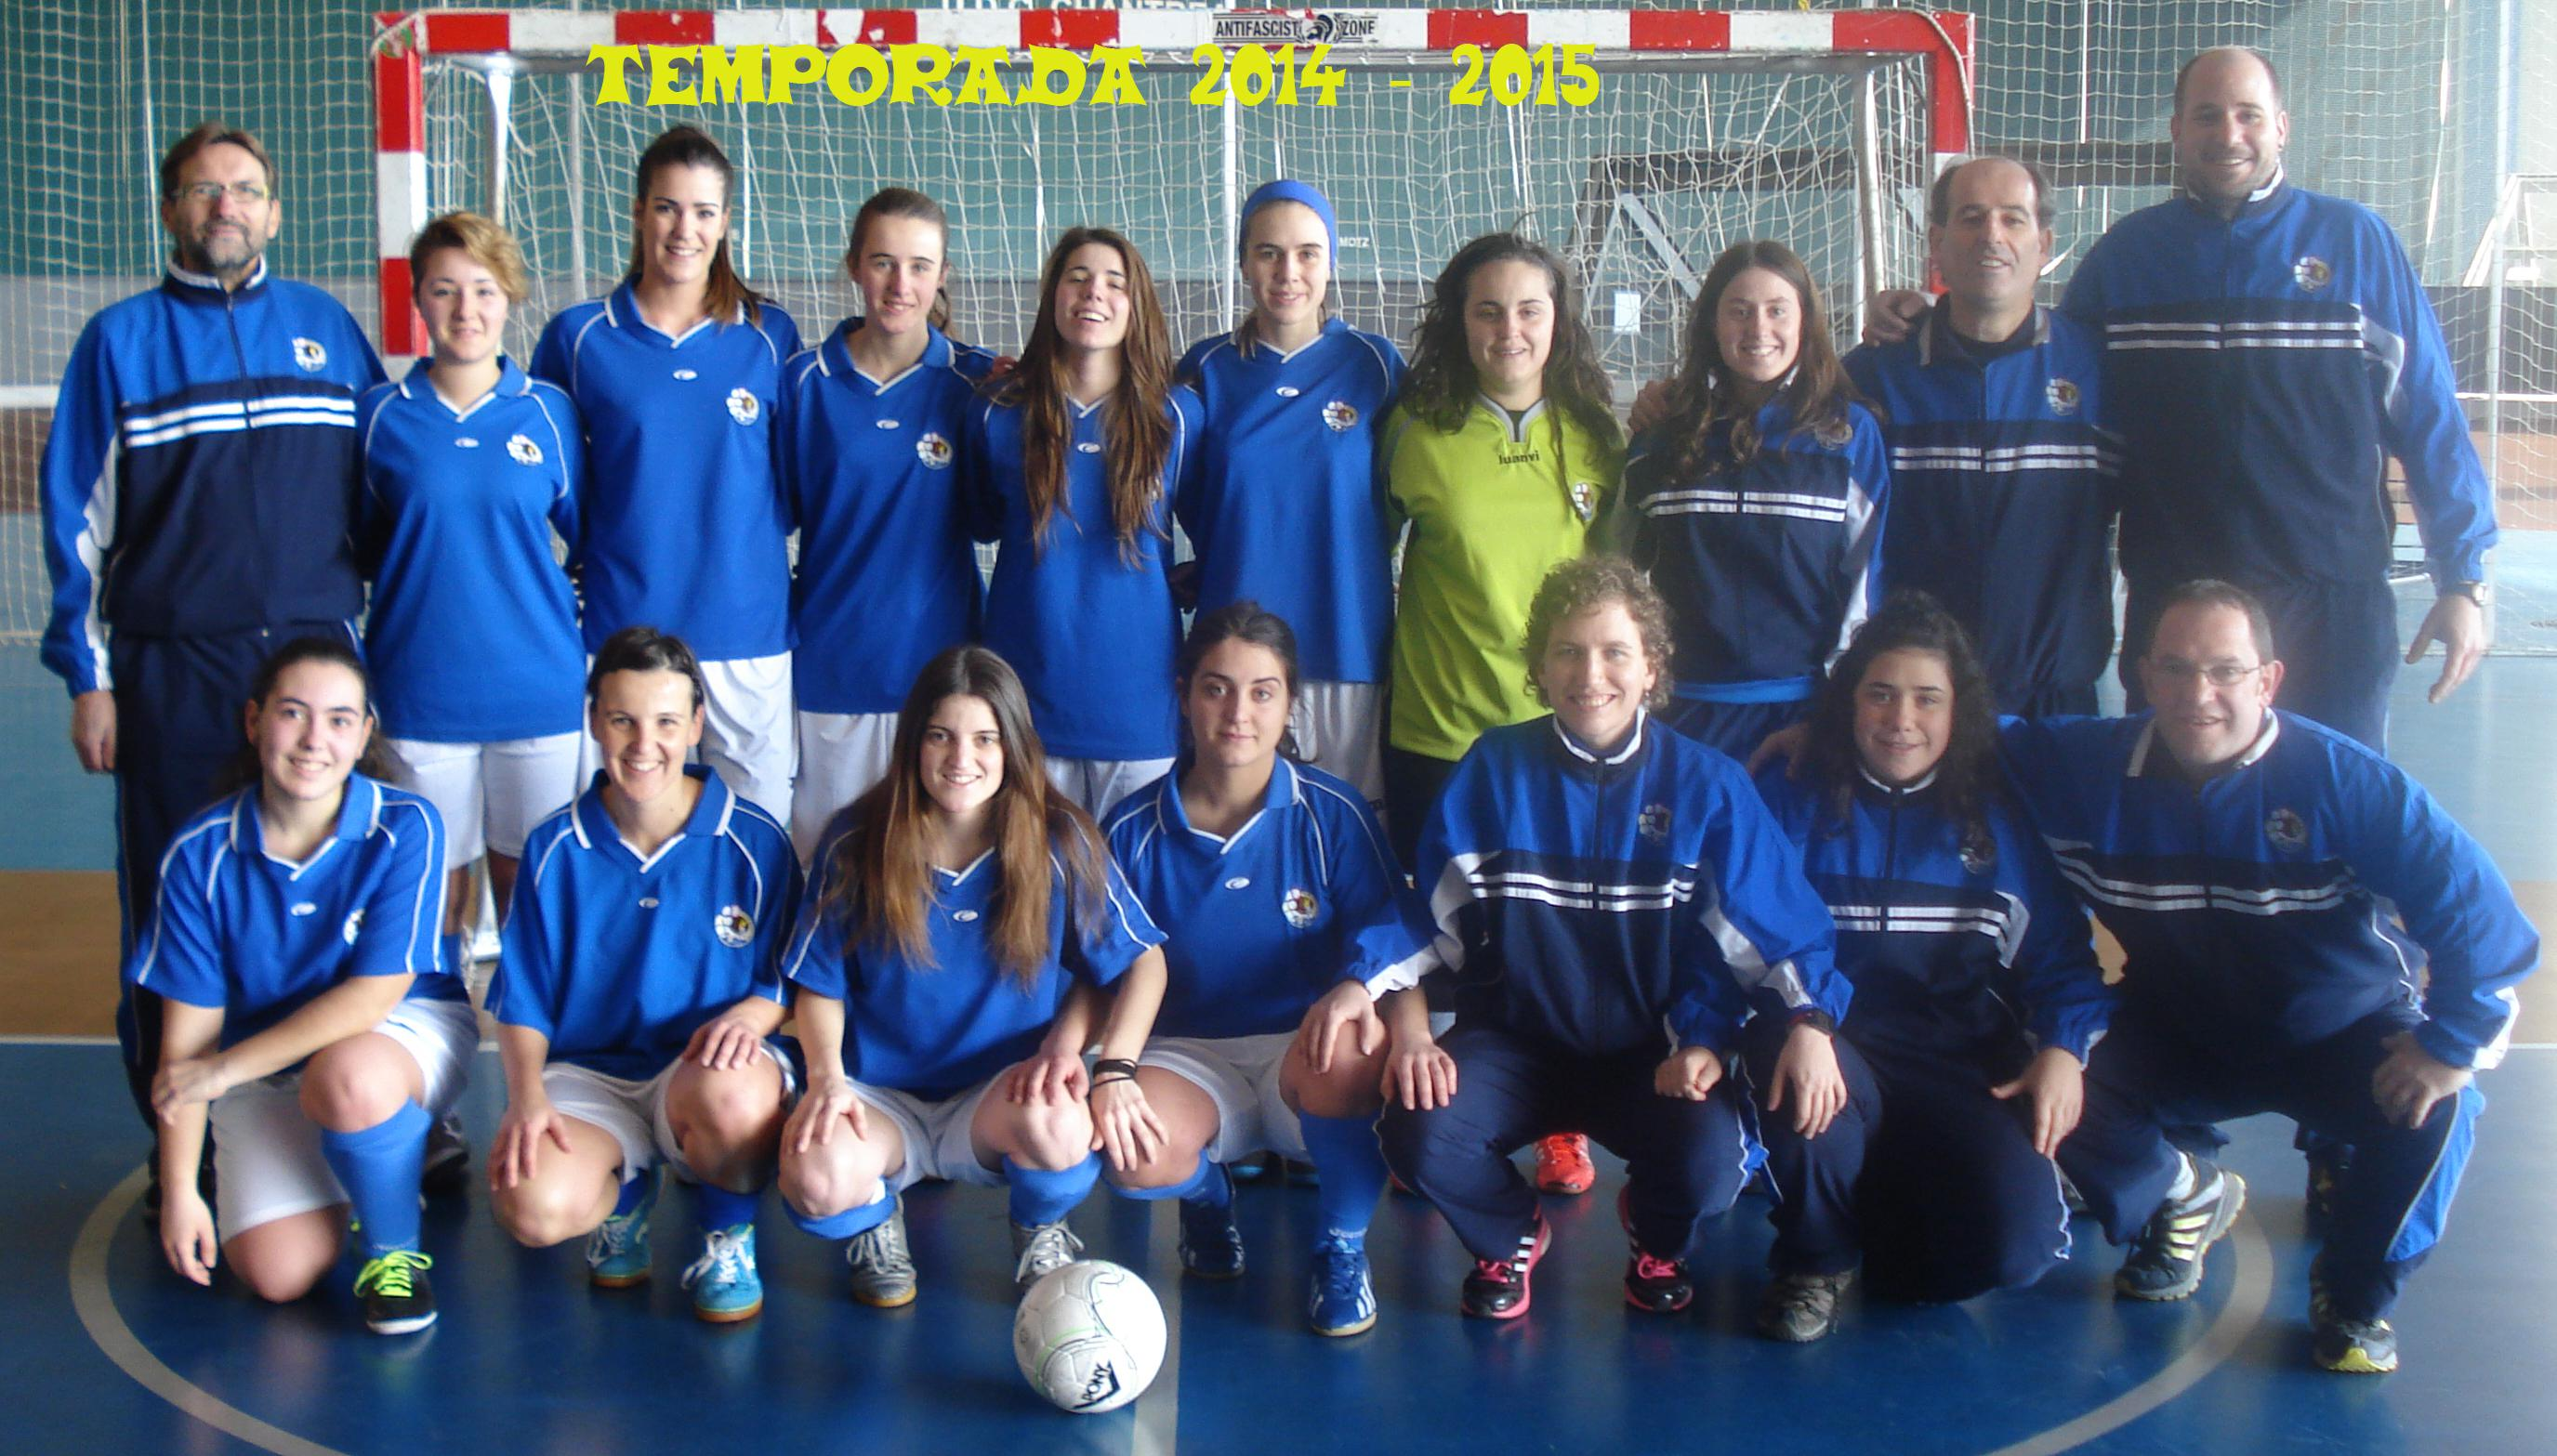 FILIAL - TEMPORADA 2014 - 2015